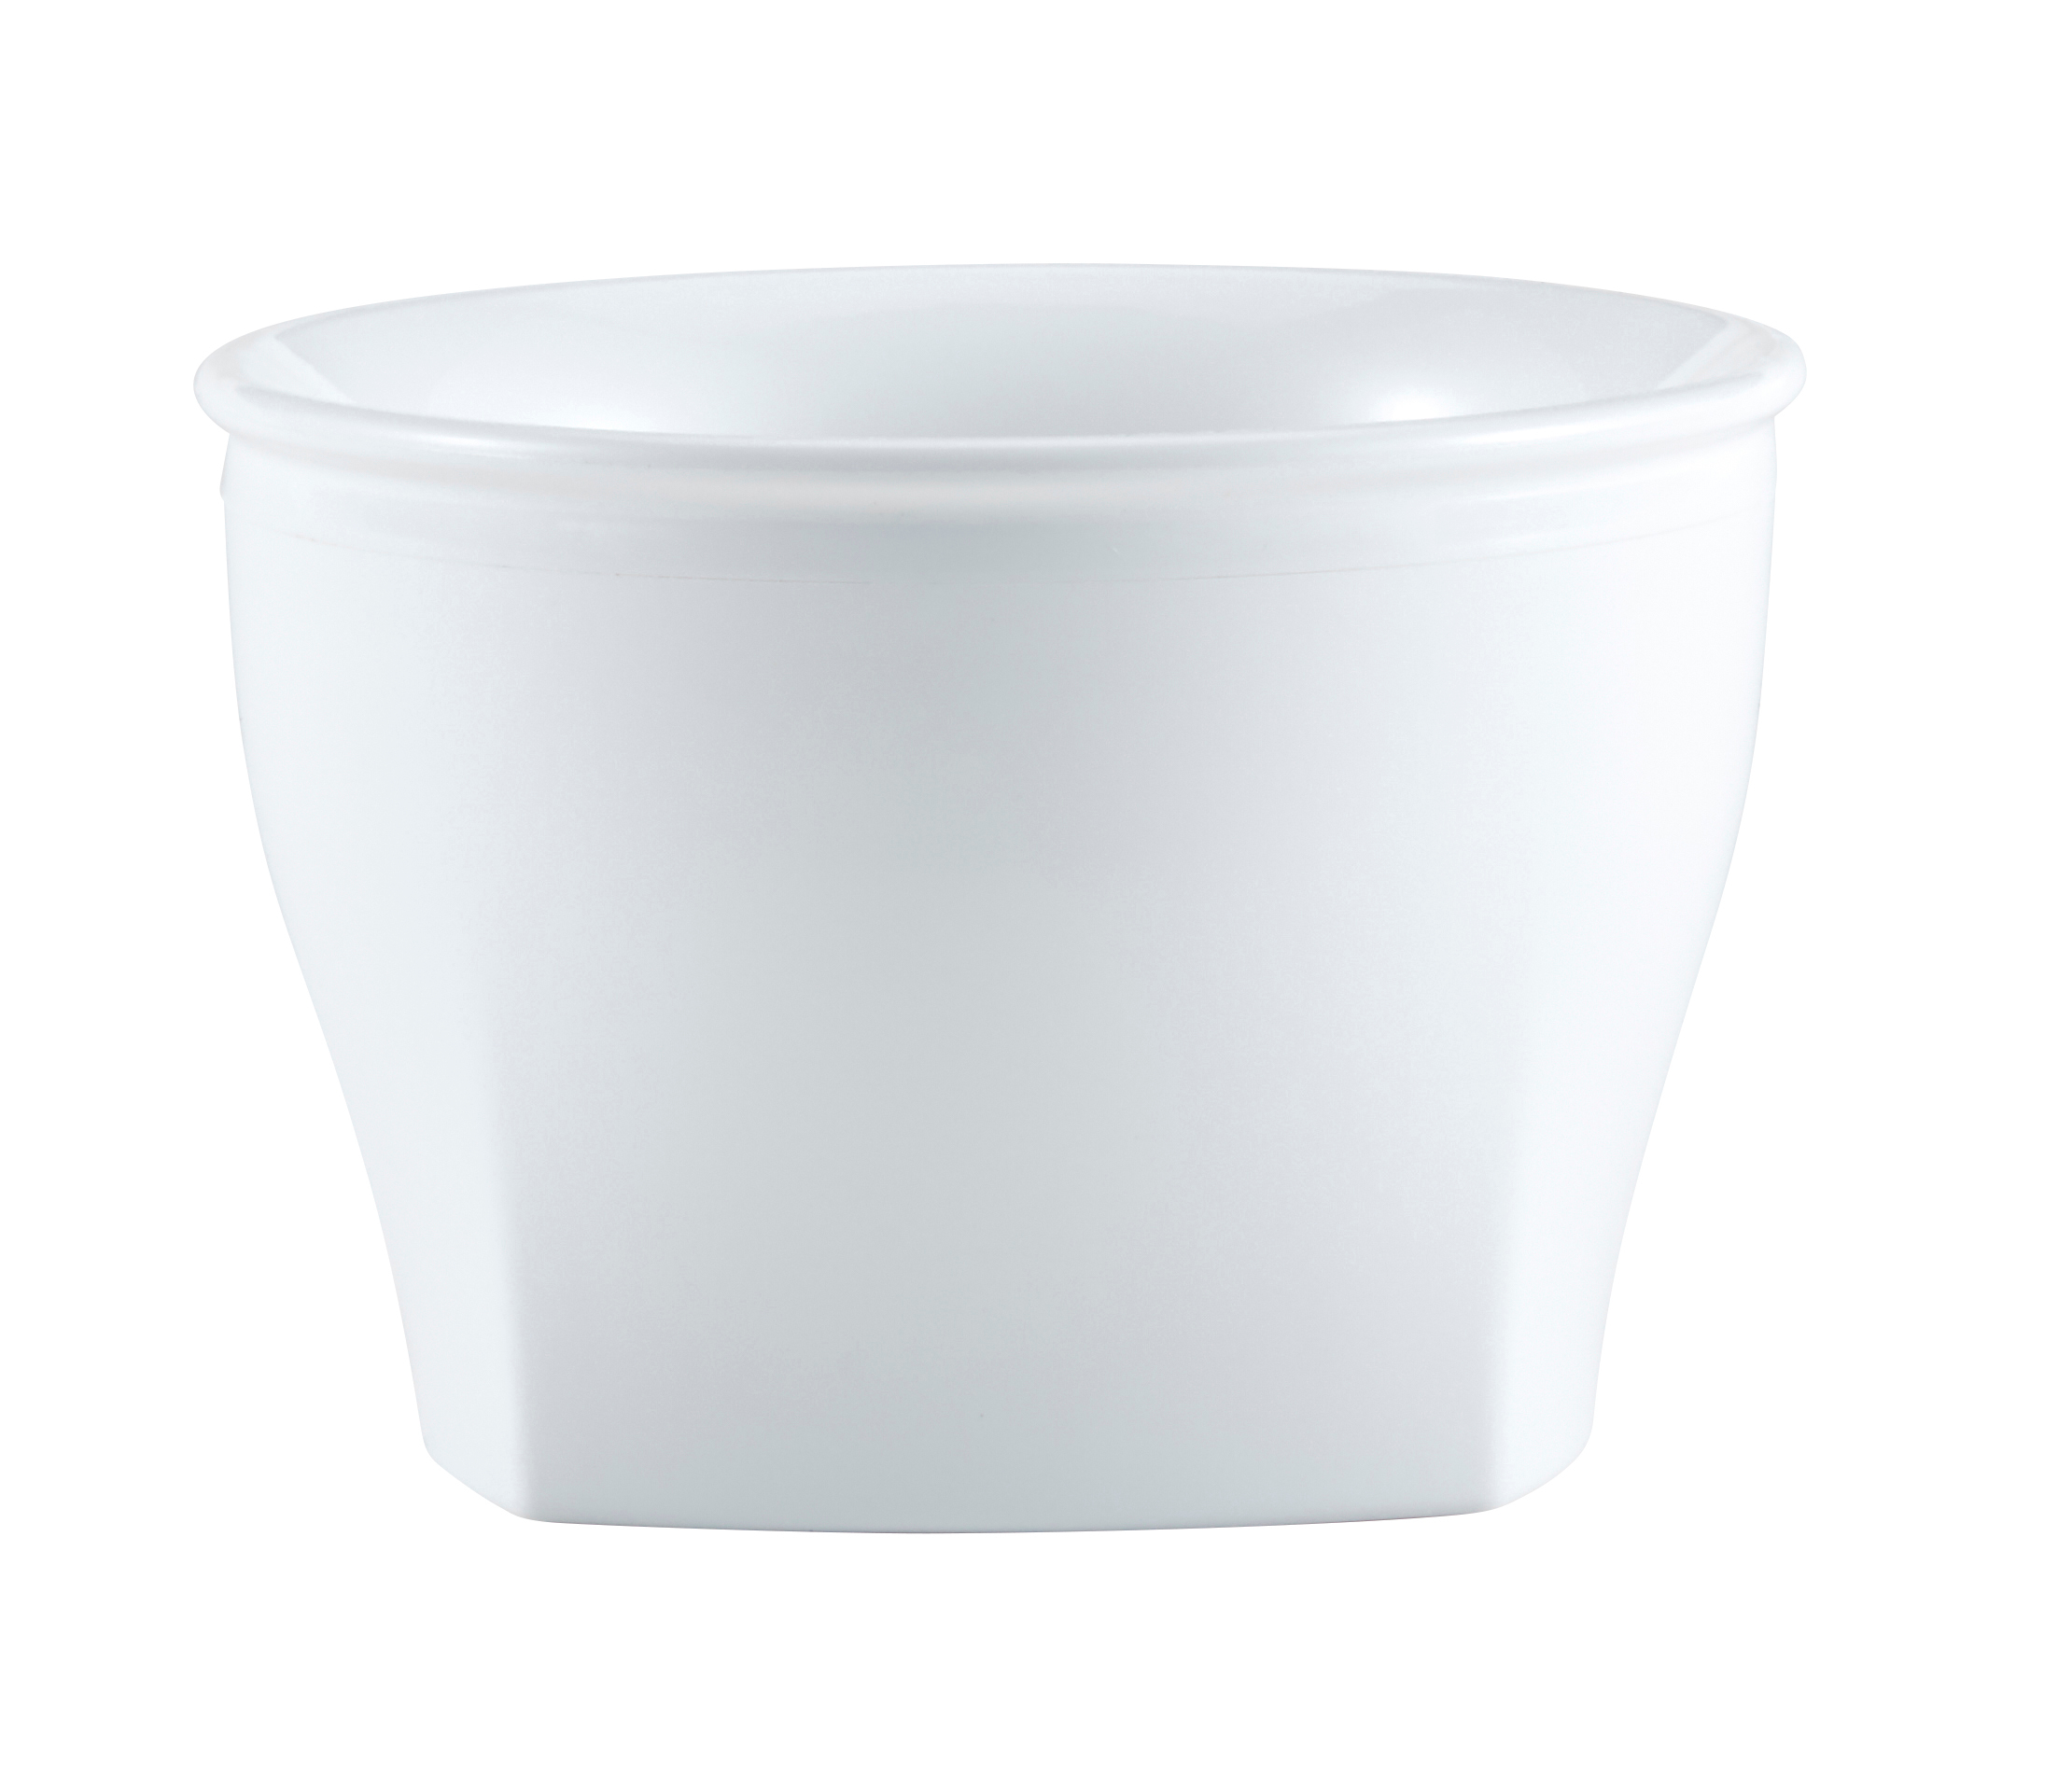 Cambro MDSHB5148 bowls (non disposable)